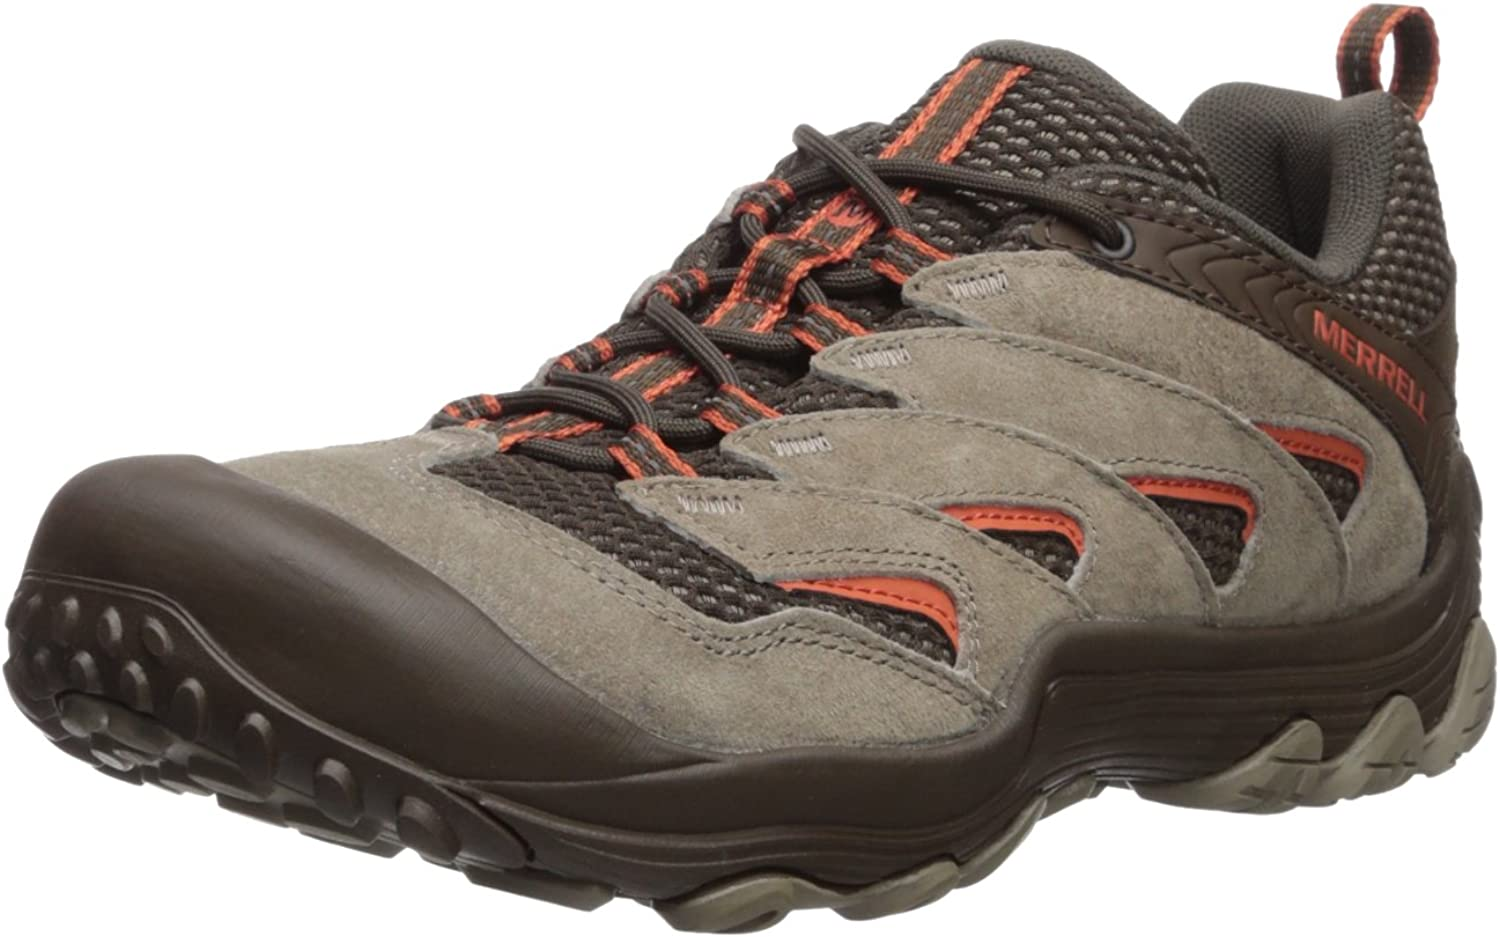 Merrell Wouomo Chameleon 7 Limit Hire avvio, Brindle, 11 Medium US